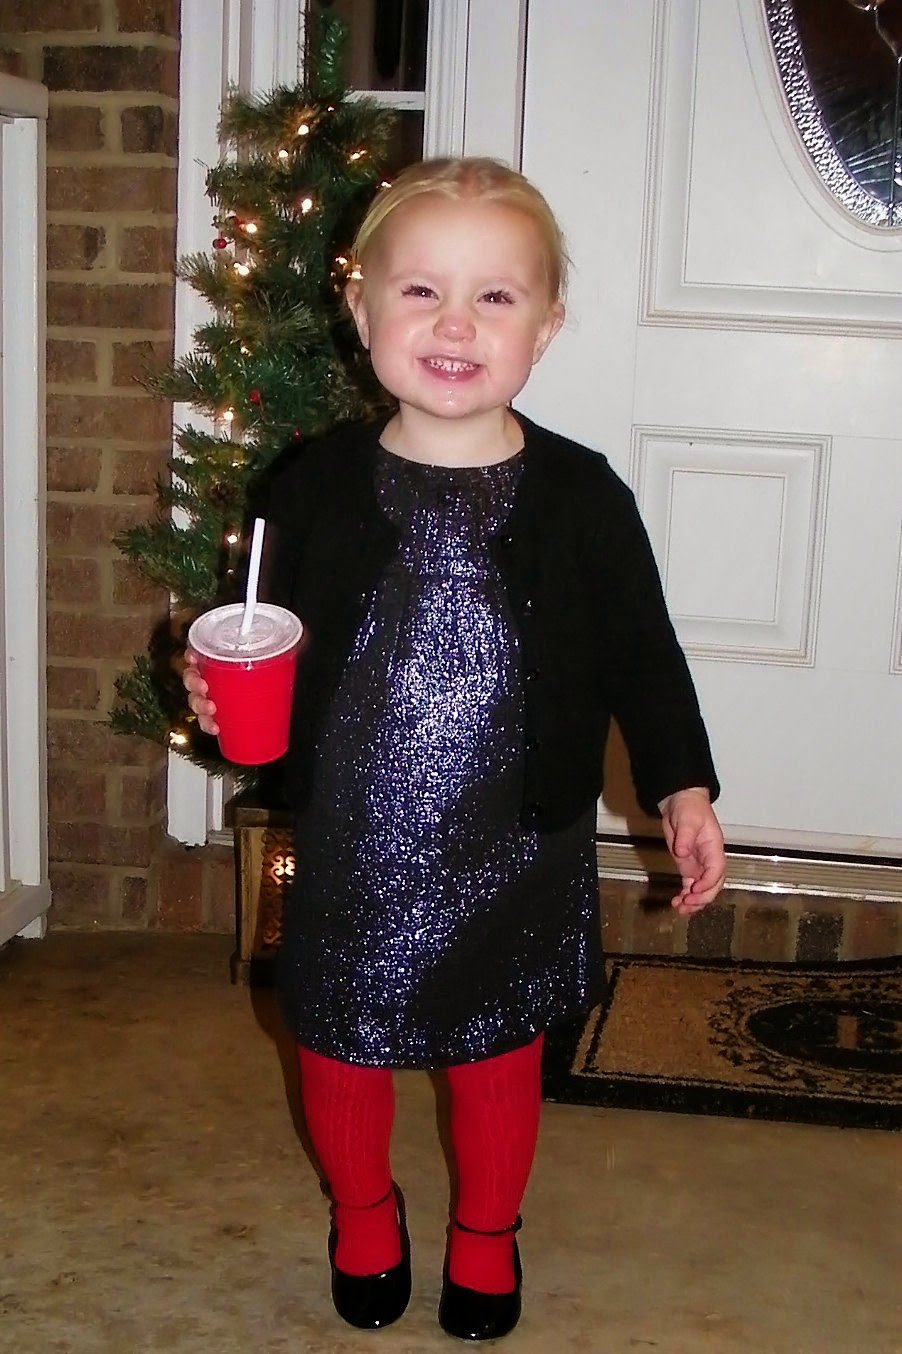 Preslie ready for her 1st Christmas program